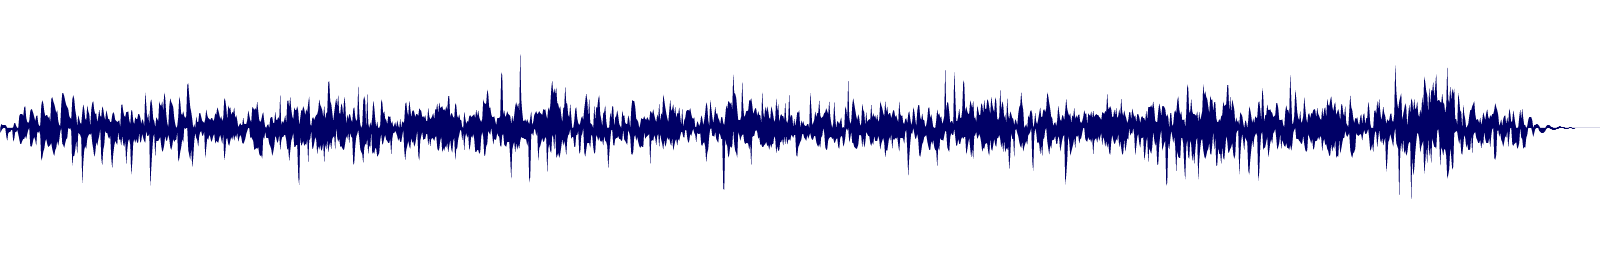 waveform of track #89297